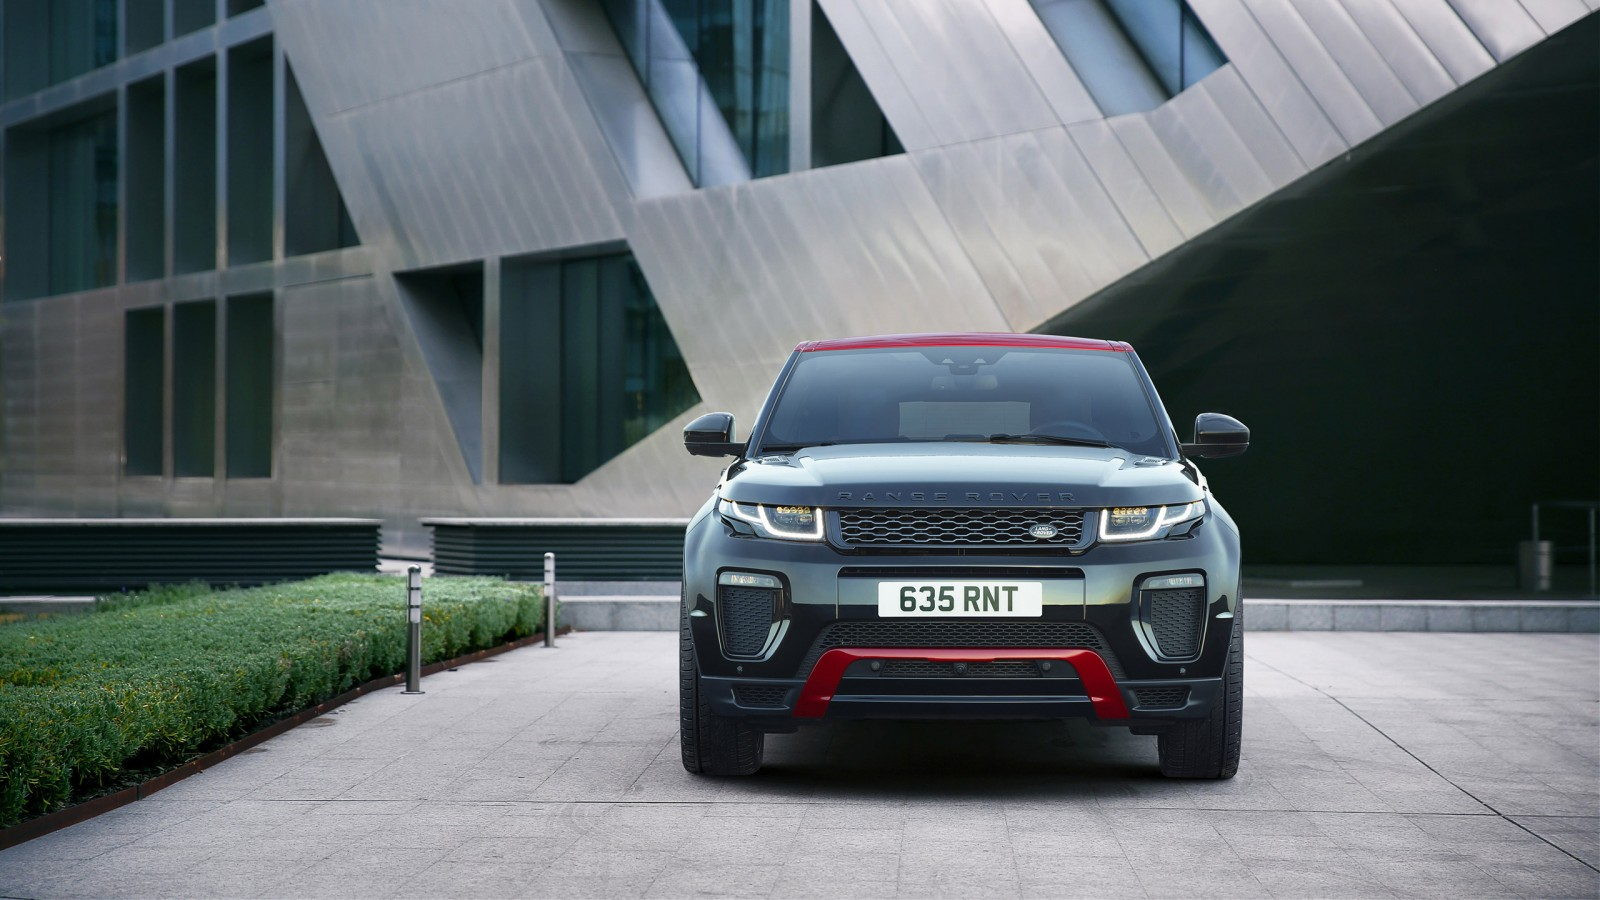 http://www.hdcarwallpapers.com/download/2016_range_rover_evoque_ember_special_edition_2-1600x900.jpg